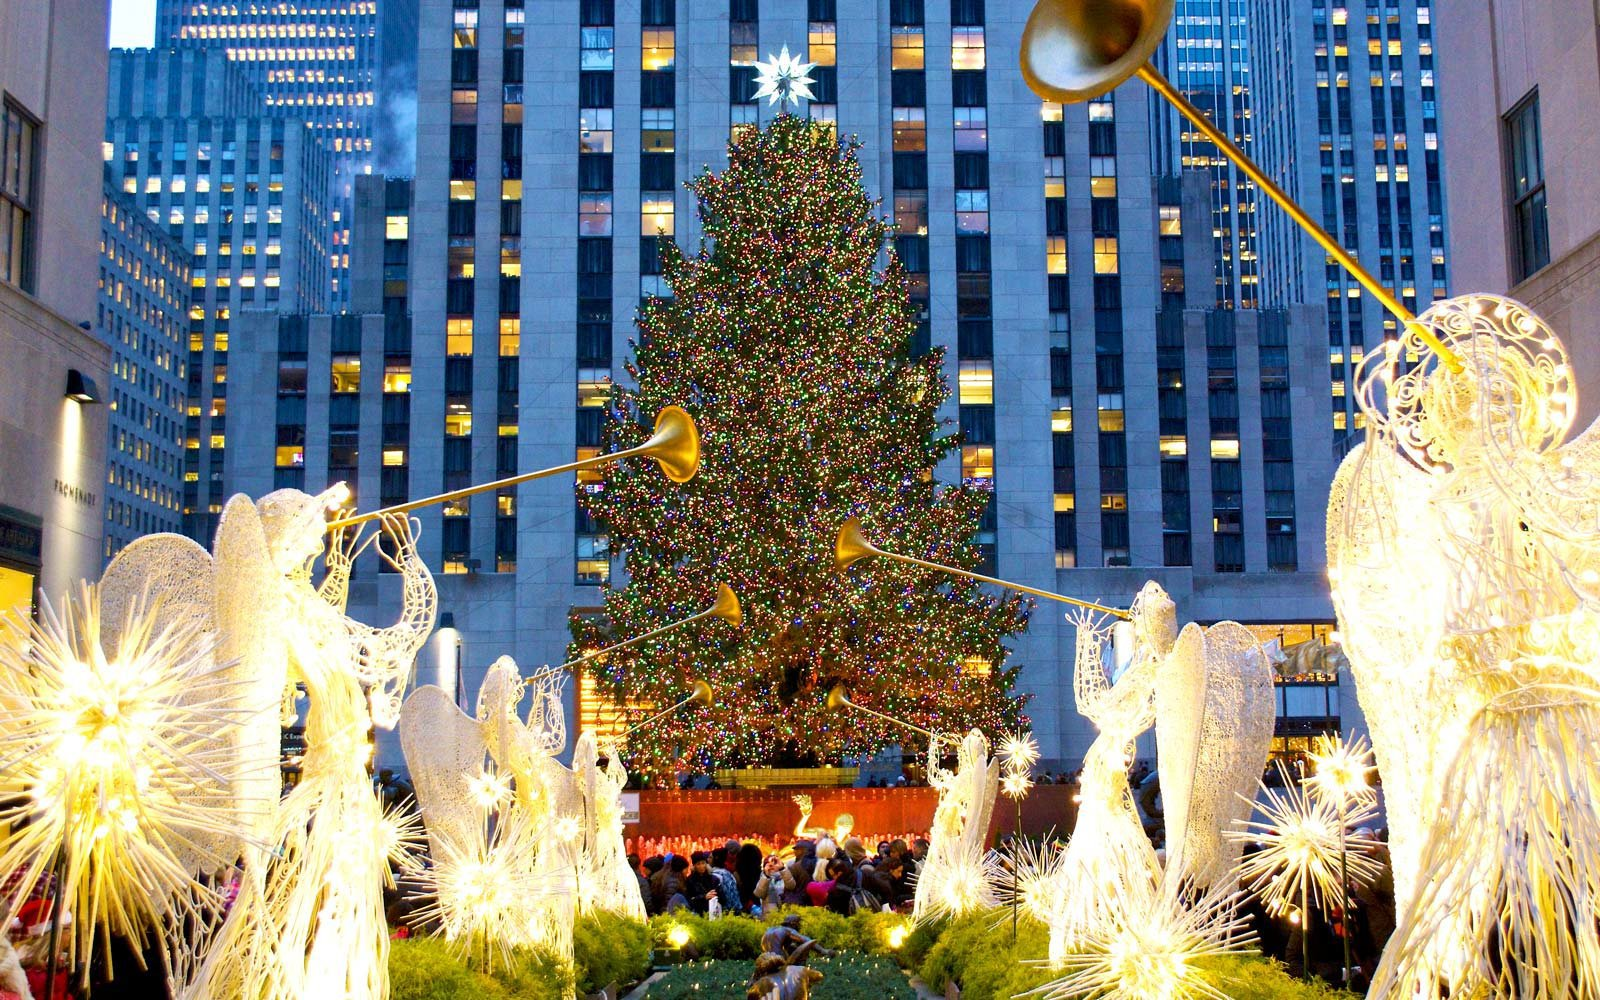 61 Days To Christmas Top 10 Places To Visit In New York City 18 days to christmas 61 Days To Christmas: Top 10 Places To Visit In New York City 🎄 61 Days To Christmas Top 10 Places To Visit In New York City 18